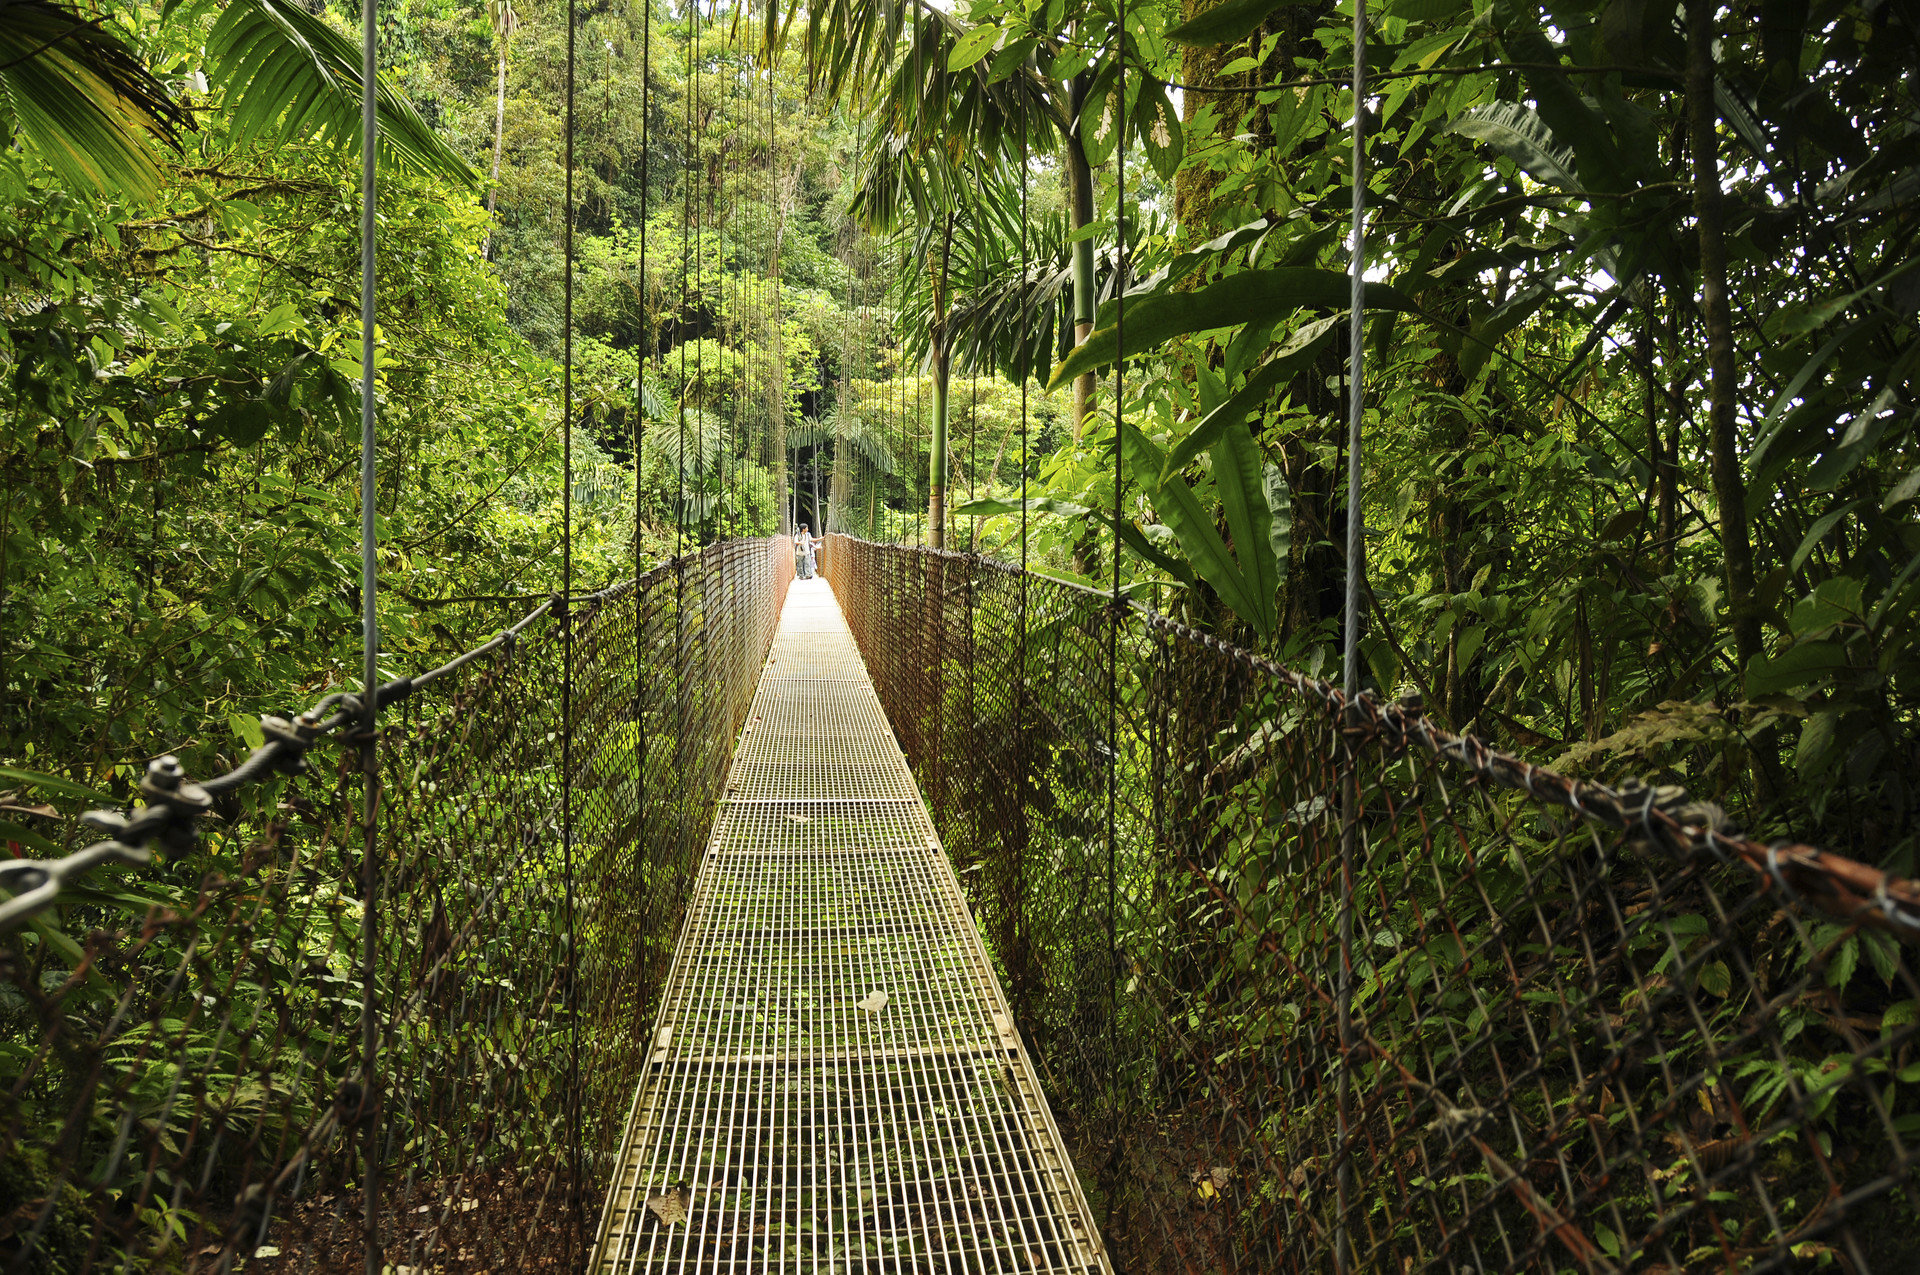 Adventure Trip Ideas tree bridge building habitat outdoor Nature natural environment green Forest rainforest botany Jungle woodland sunlight leaf Garden canopy walkway plant wood wooded